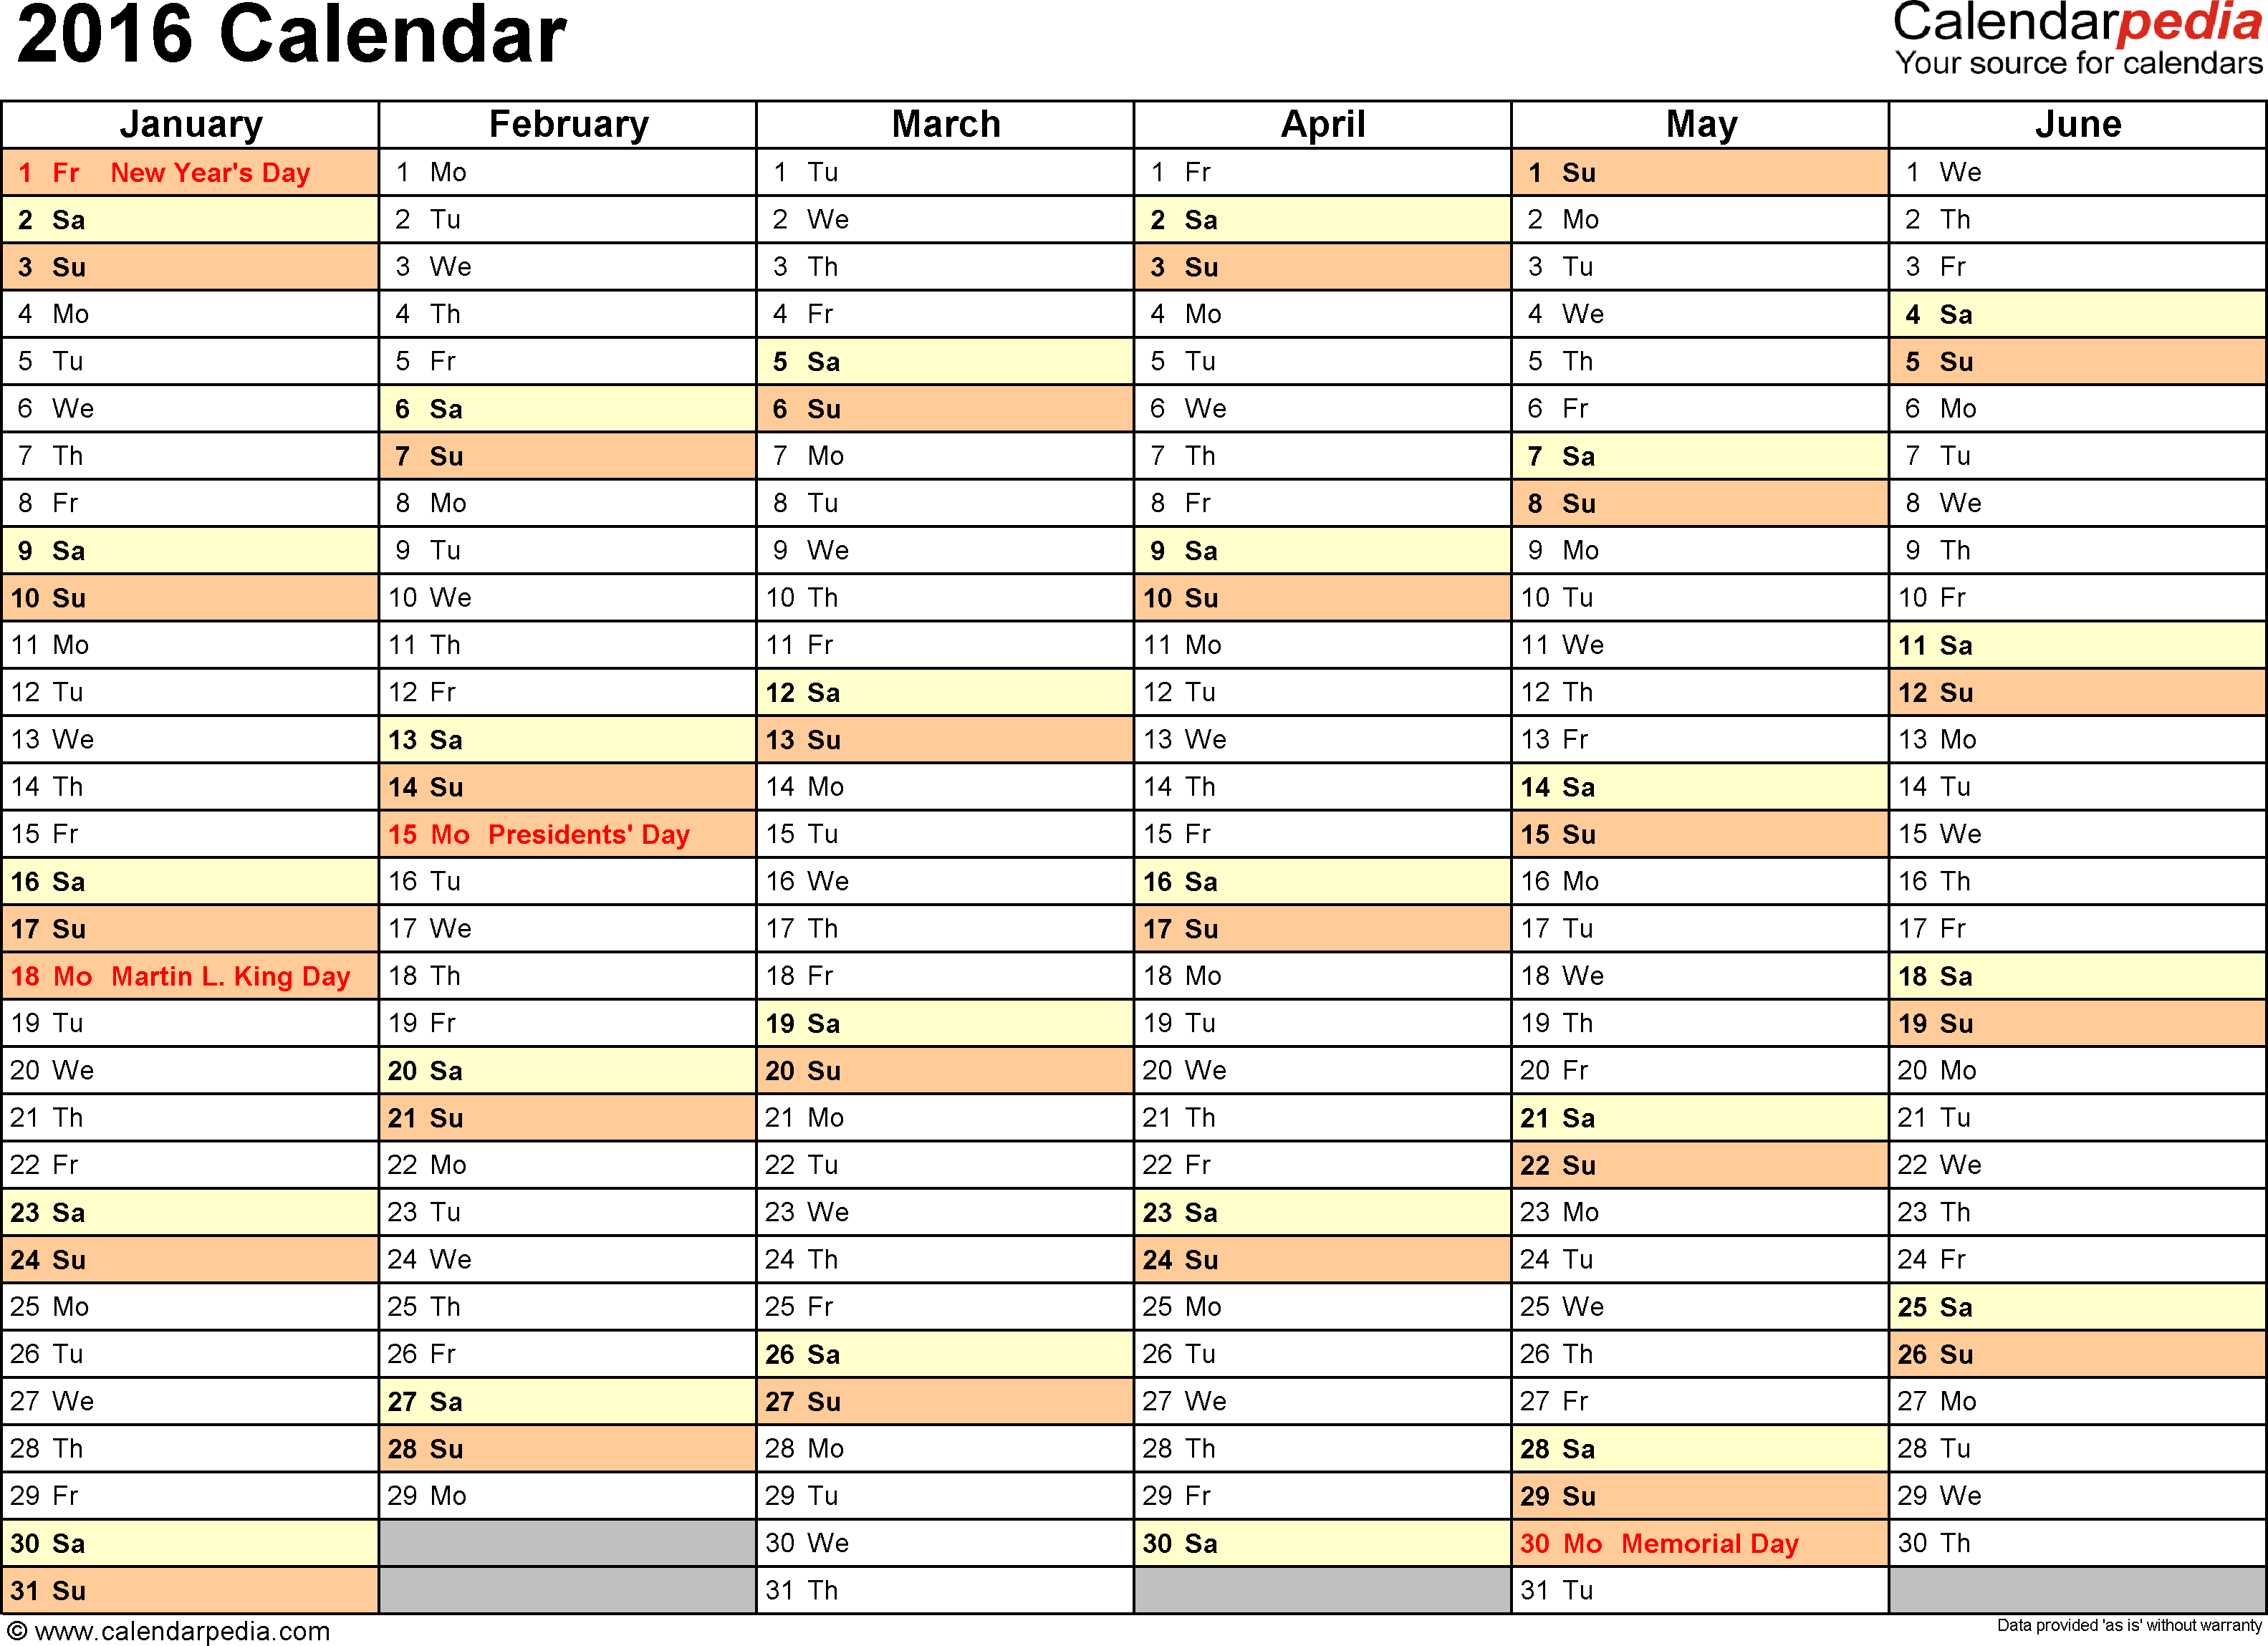 Ediblewildsus  Seductive  Calendar  Download  Free Printable Excel Templates Xls With Interesting Template   Calendar For Excel Months Horizontally  Pages Landscape Orientation With Alluring Excel Vba Programming For Dummies Pdf Also Working With Graphics In Excel In Addition Excel Engineering Notation And Office Excel  As Well As Open Excel In Google Docs Additionally Word And Excel For Mac Free Download From Calendarpediacom With Ediblewildsus  Interesting  Calendar  Download  Free Printable Excel Templates Xls With Alluring Template   Calendar For Excel Months Horizontally  Pages Landscape Orientation And Seductive Excel Vba Programming For Dummies Pdf Also Working With Graphics In Excel In Addition Excel Engineering Notation From Calendarpediacom